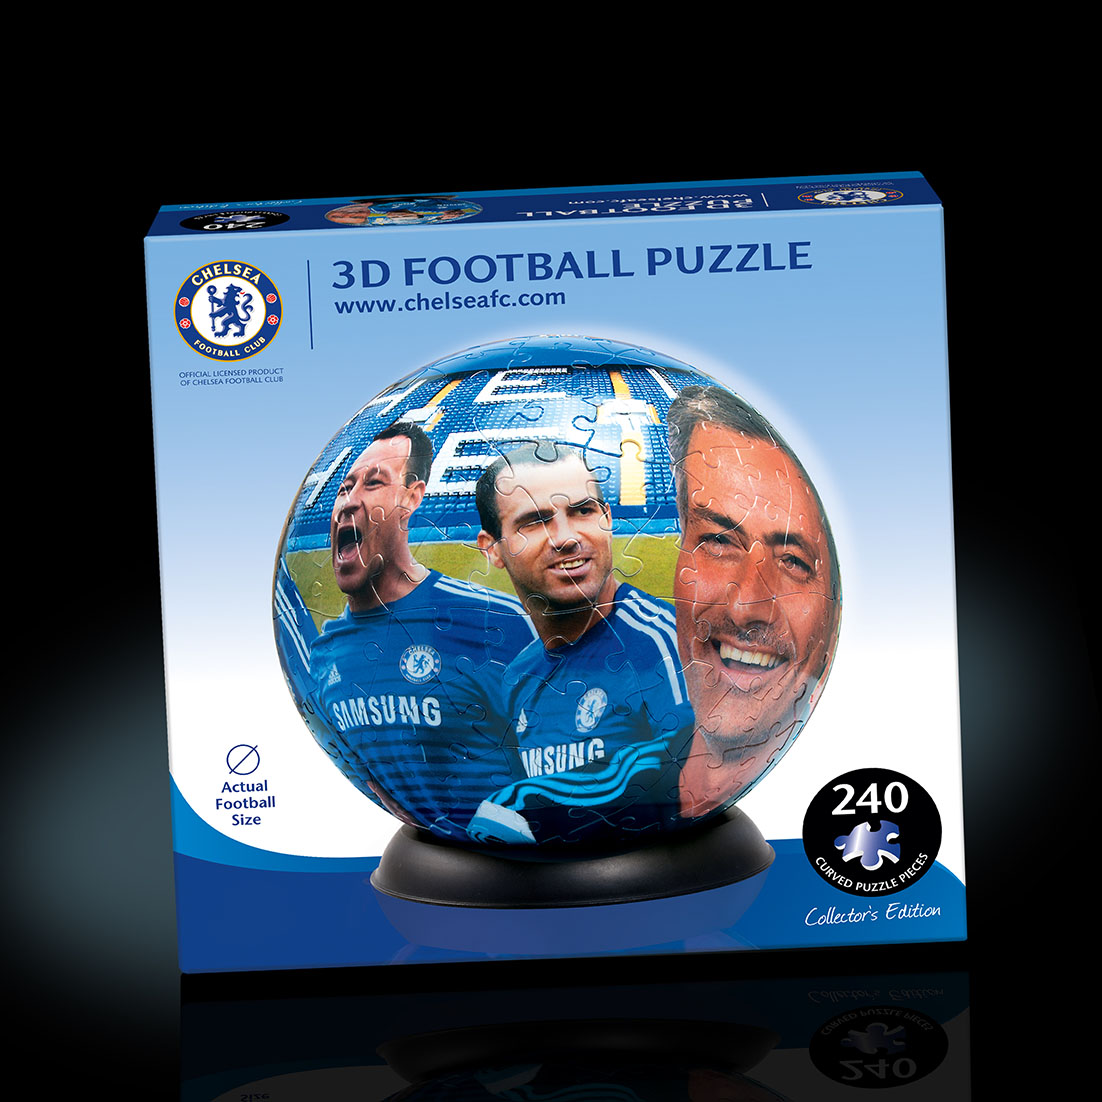 Chelsea 3D Football puzzle packaging